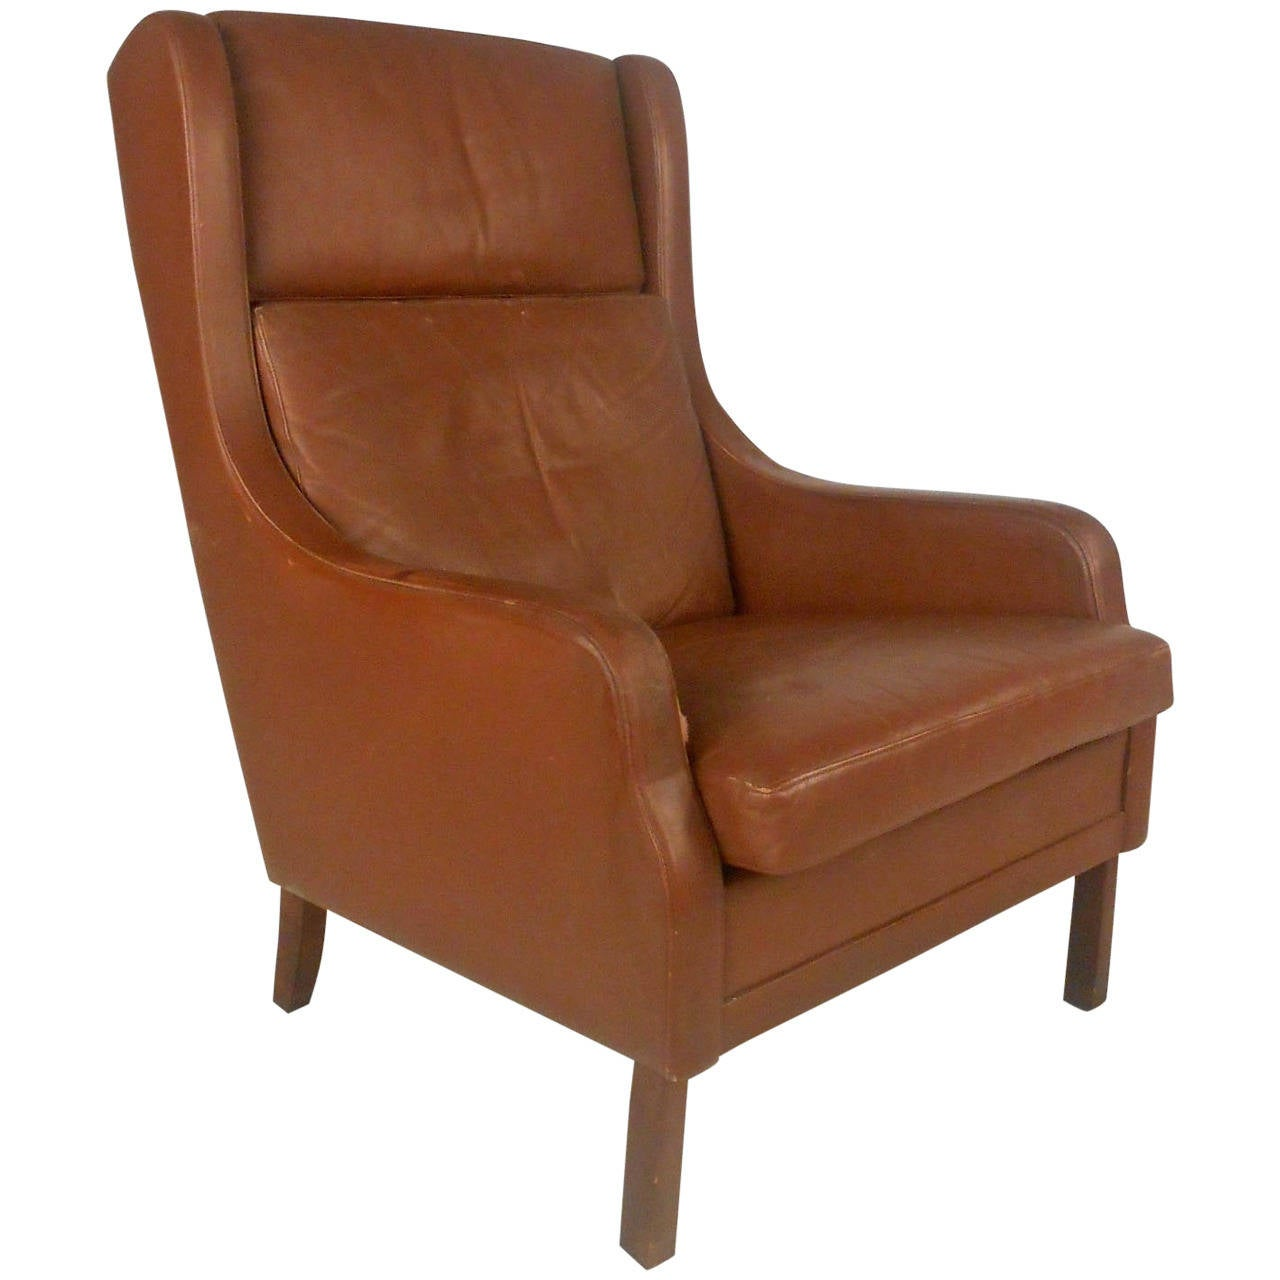 Unique Lounge Chair Unique Mid Century Modern Vintage Leather Danish Lounge Chair